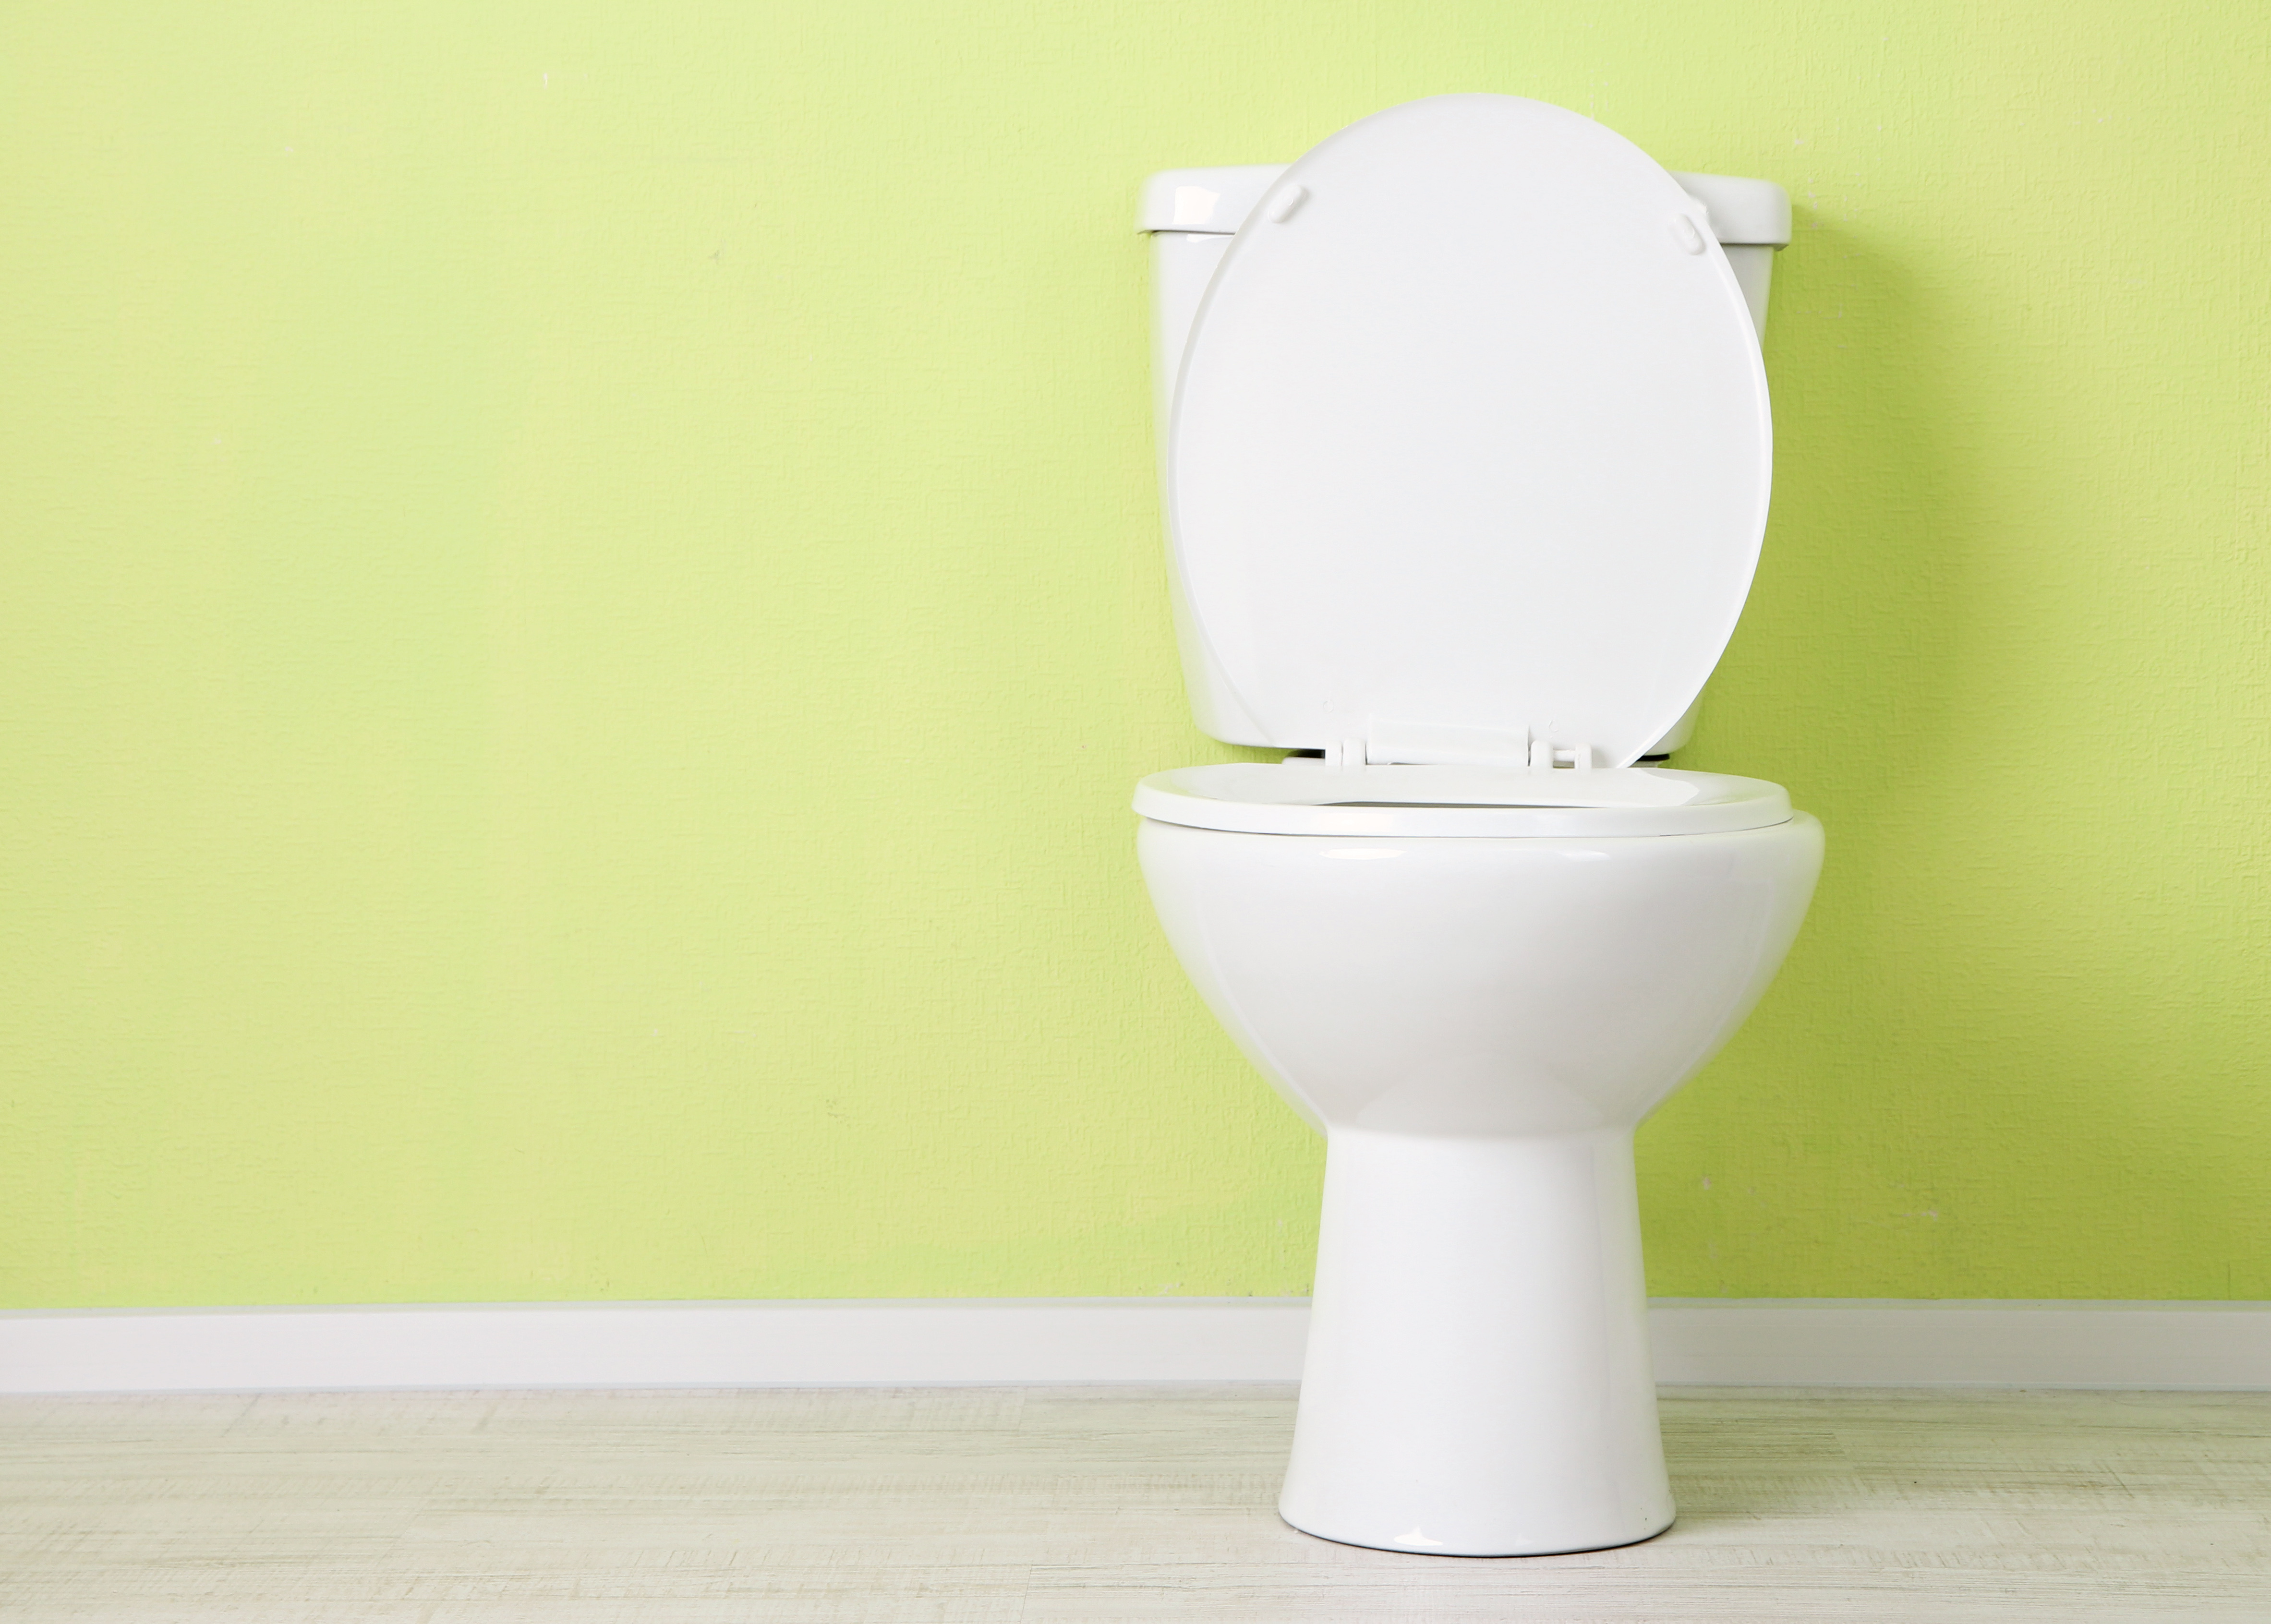 White toilet bowl in a bathroom. Toilet Repair   CARDINAL PLUMBING COMPANY